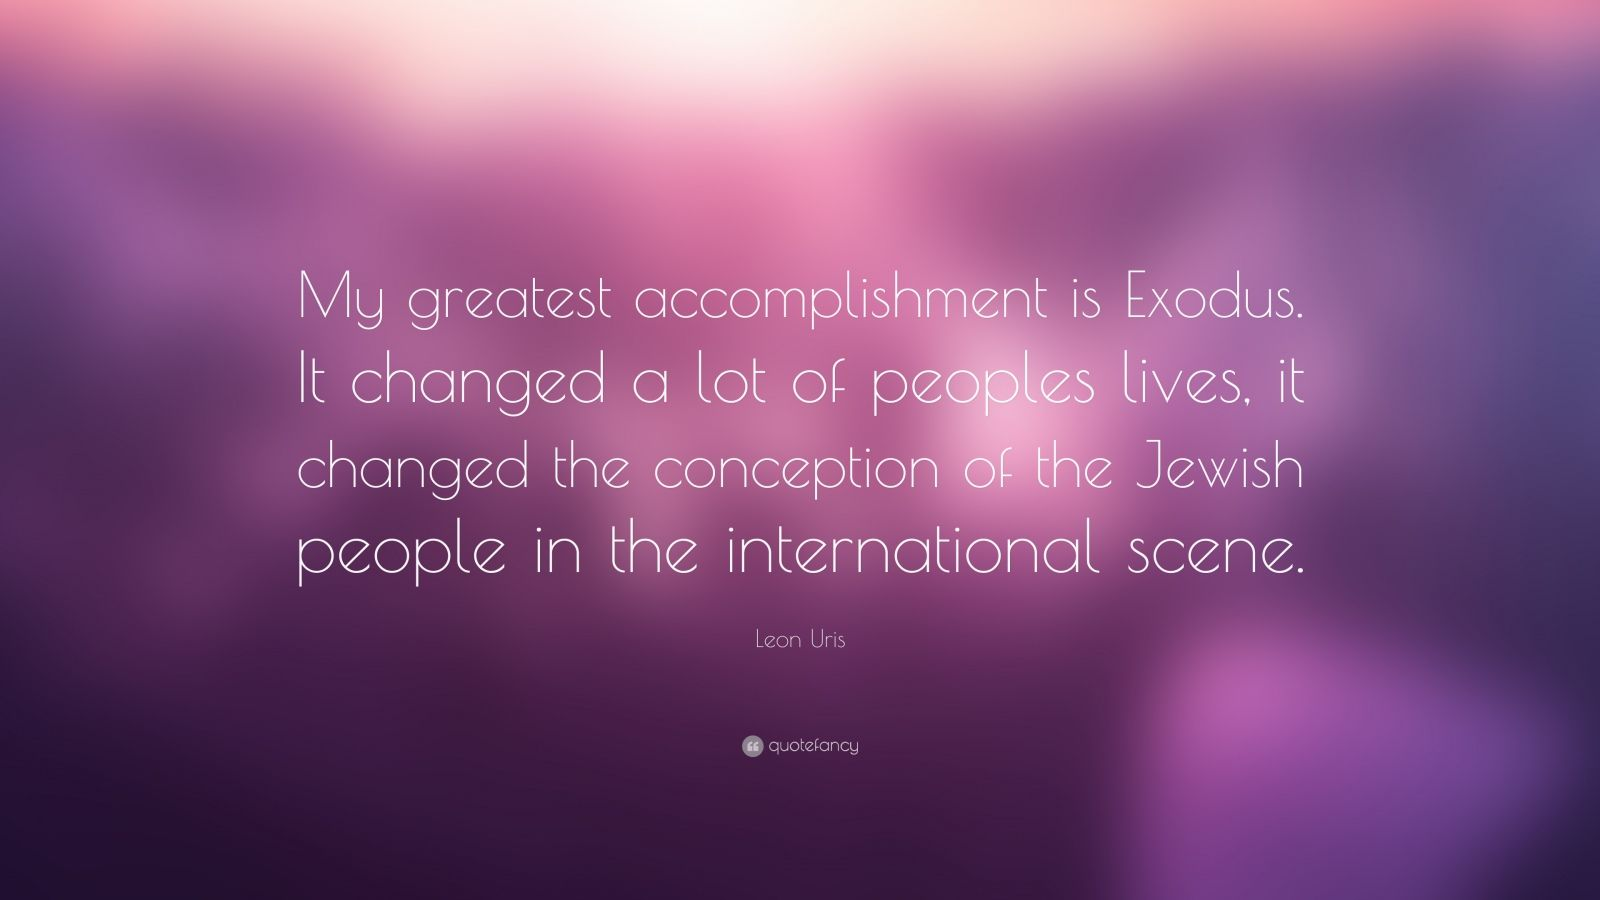 """Leon Uris Quote: """"My greatest accomplishment is Exodus. It changed a lot of peoples lives, it changed the conception of the Jewish people in the international scene."""""""